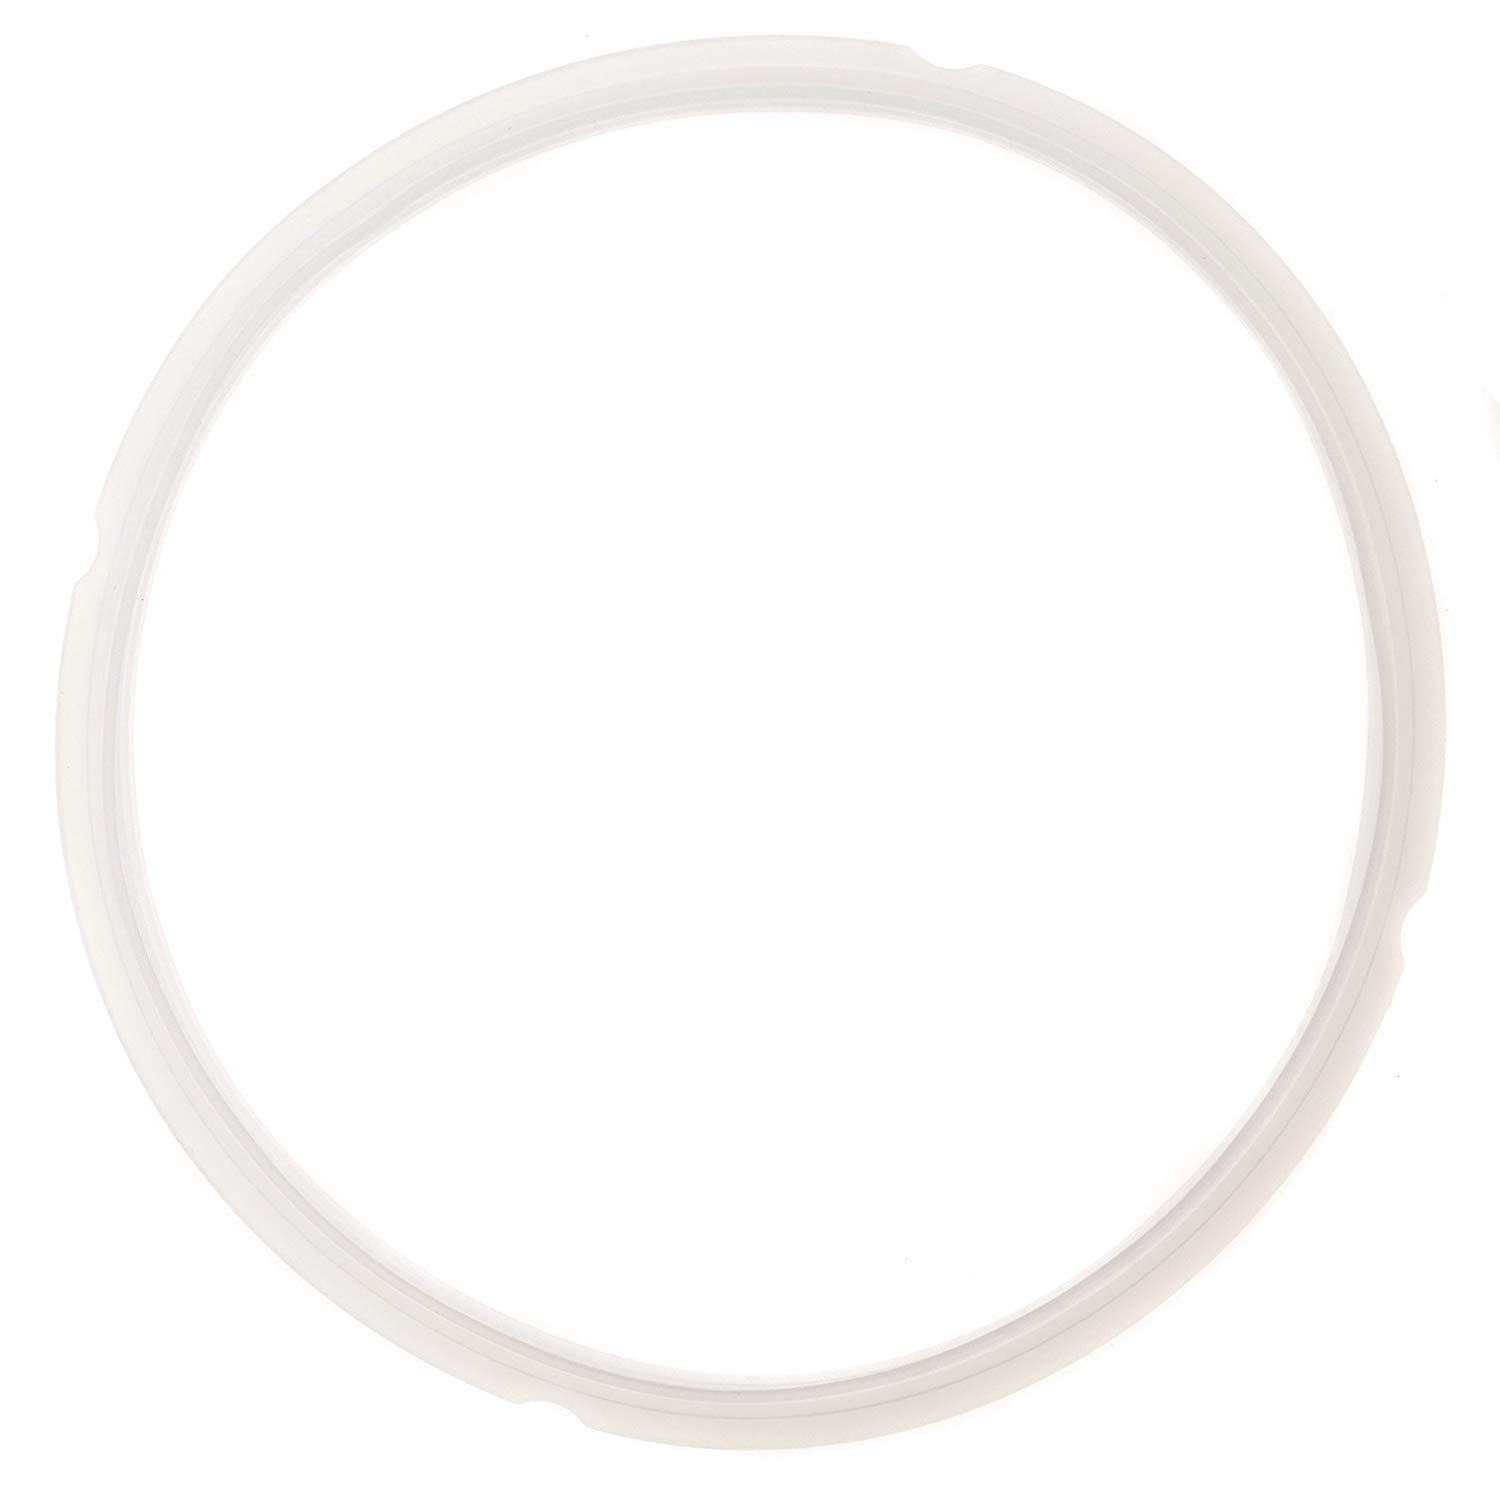 Silicone Sealing Gasket for Crock-Pot 6 Qt 8-in-1 Multi-Use Express Crock Programmable Slow Cooker, Pressure Cooker Model SCCPPC600-V1